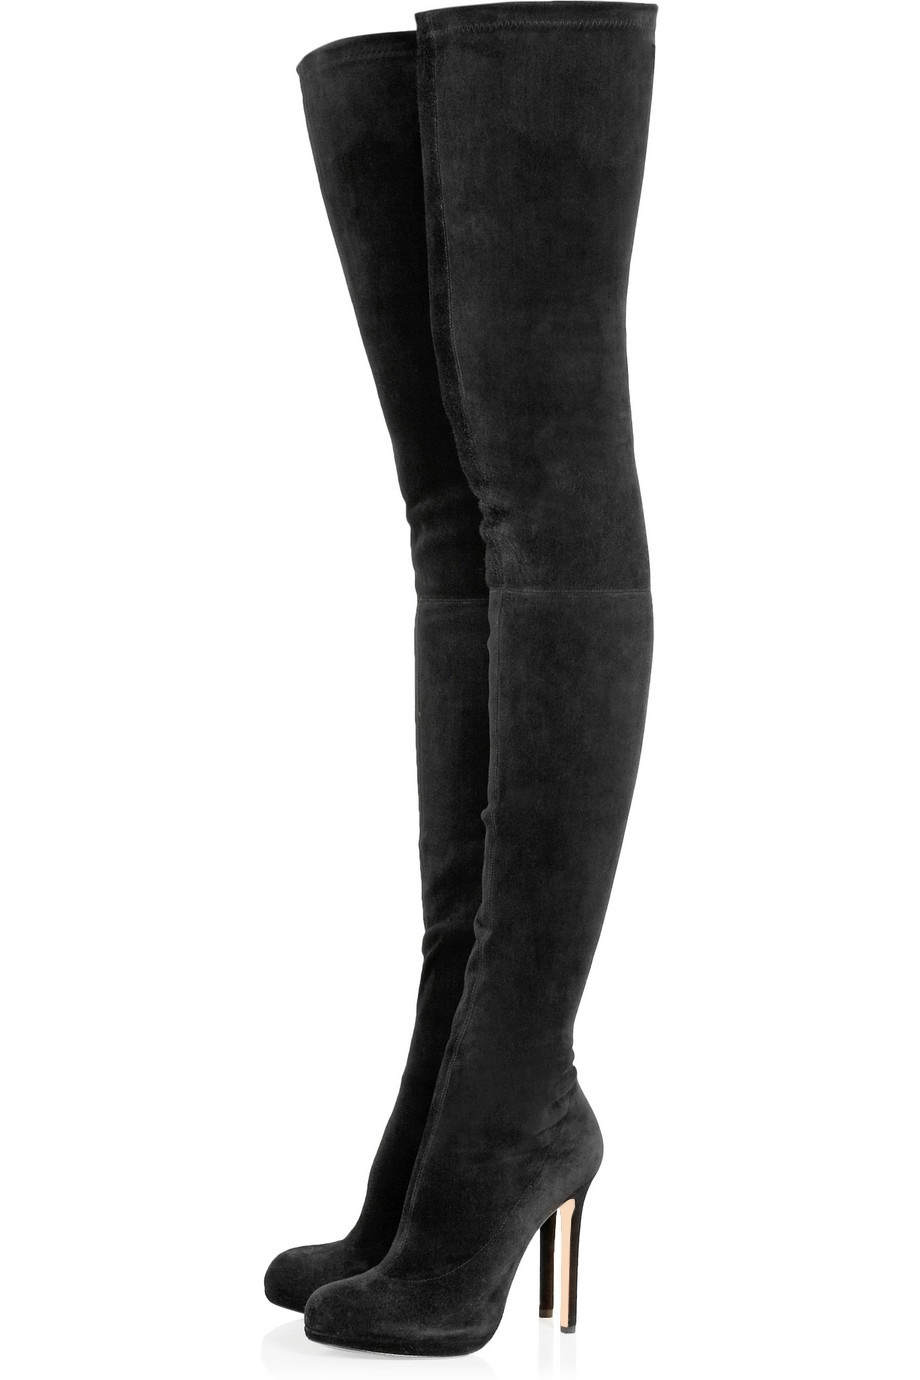 140870b1626 Boldees Fancy Women Black Stretch Suede Over the Knee Thigh High ...